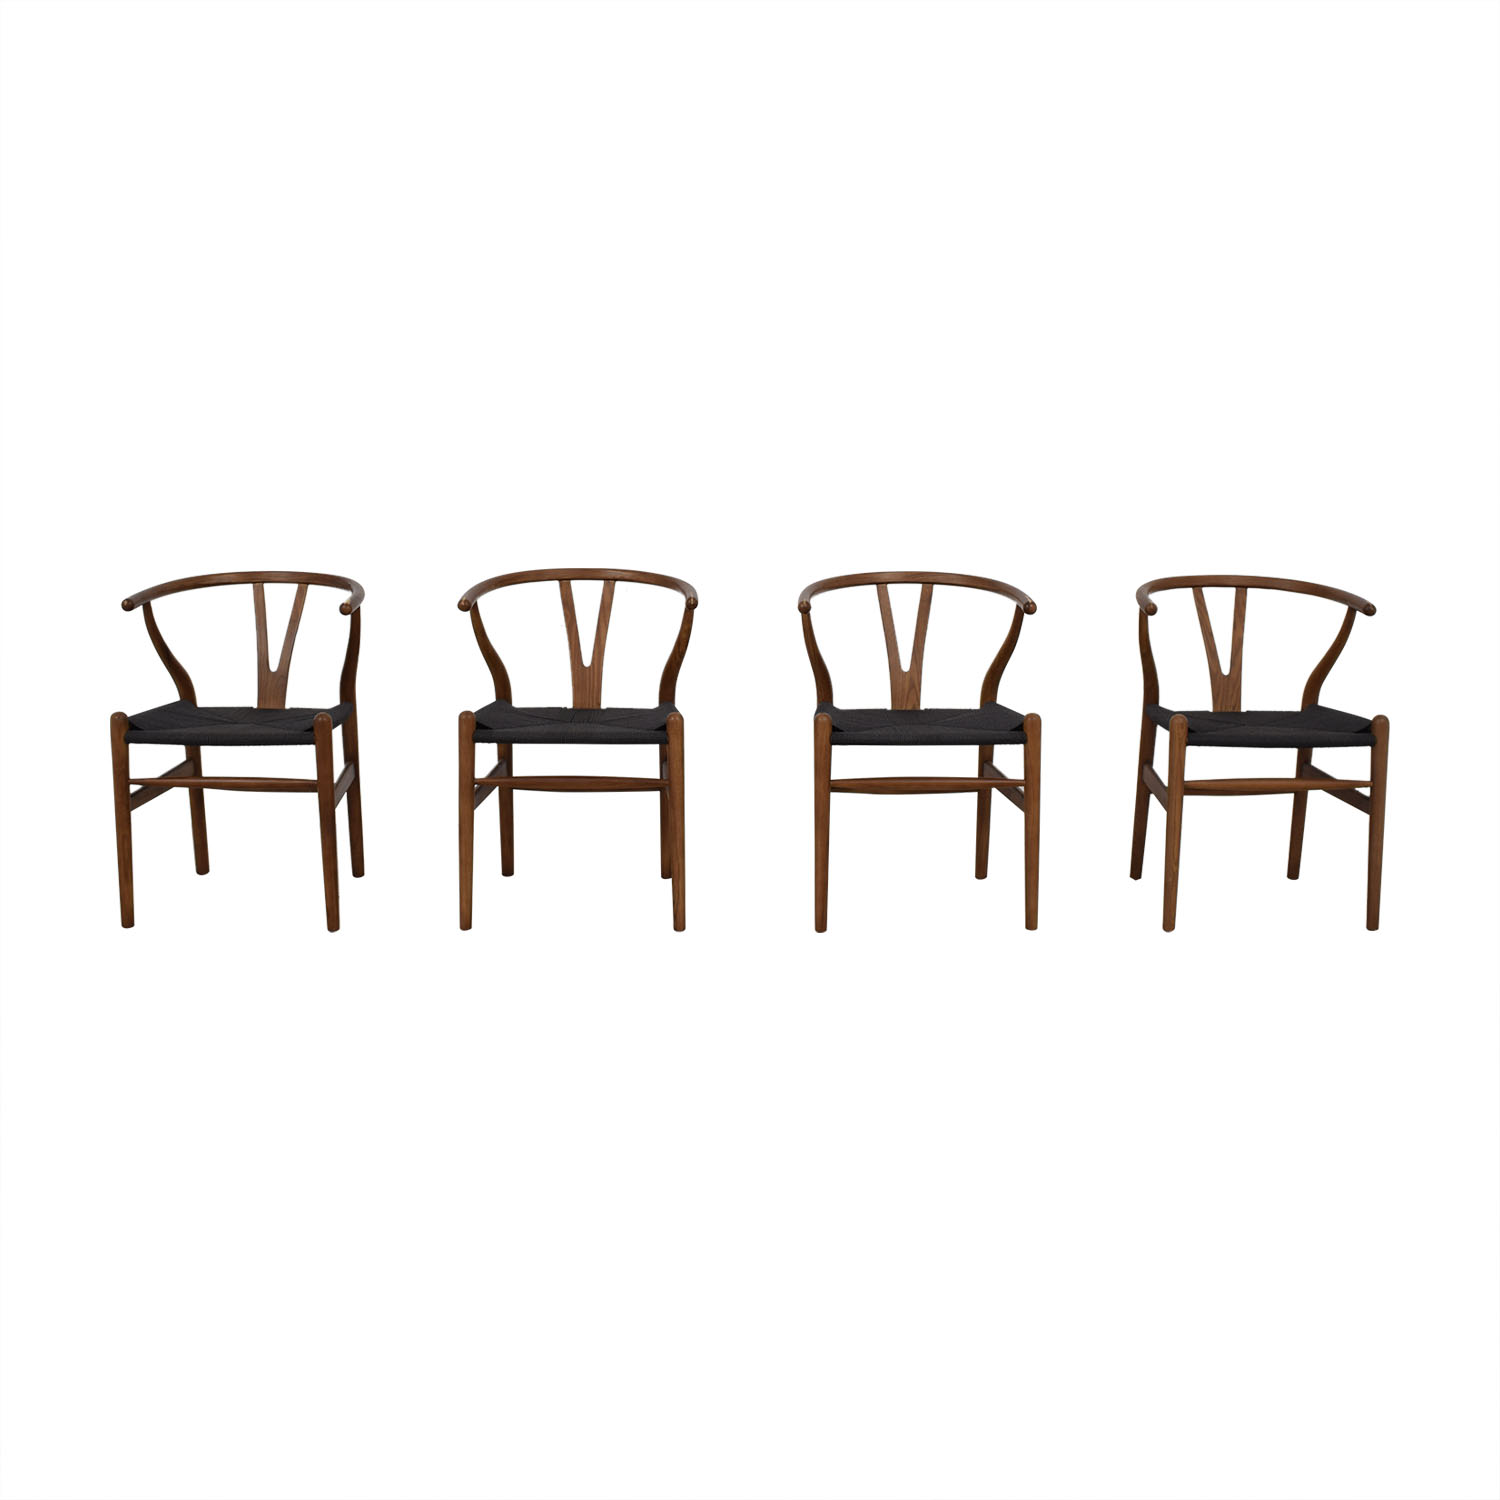 shop Rove Concepts Rove Concepts Wishbone Chairs online